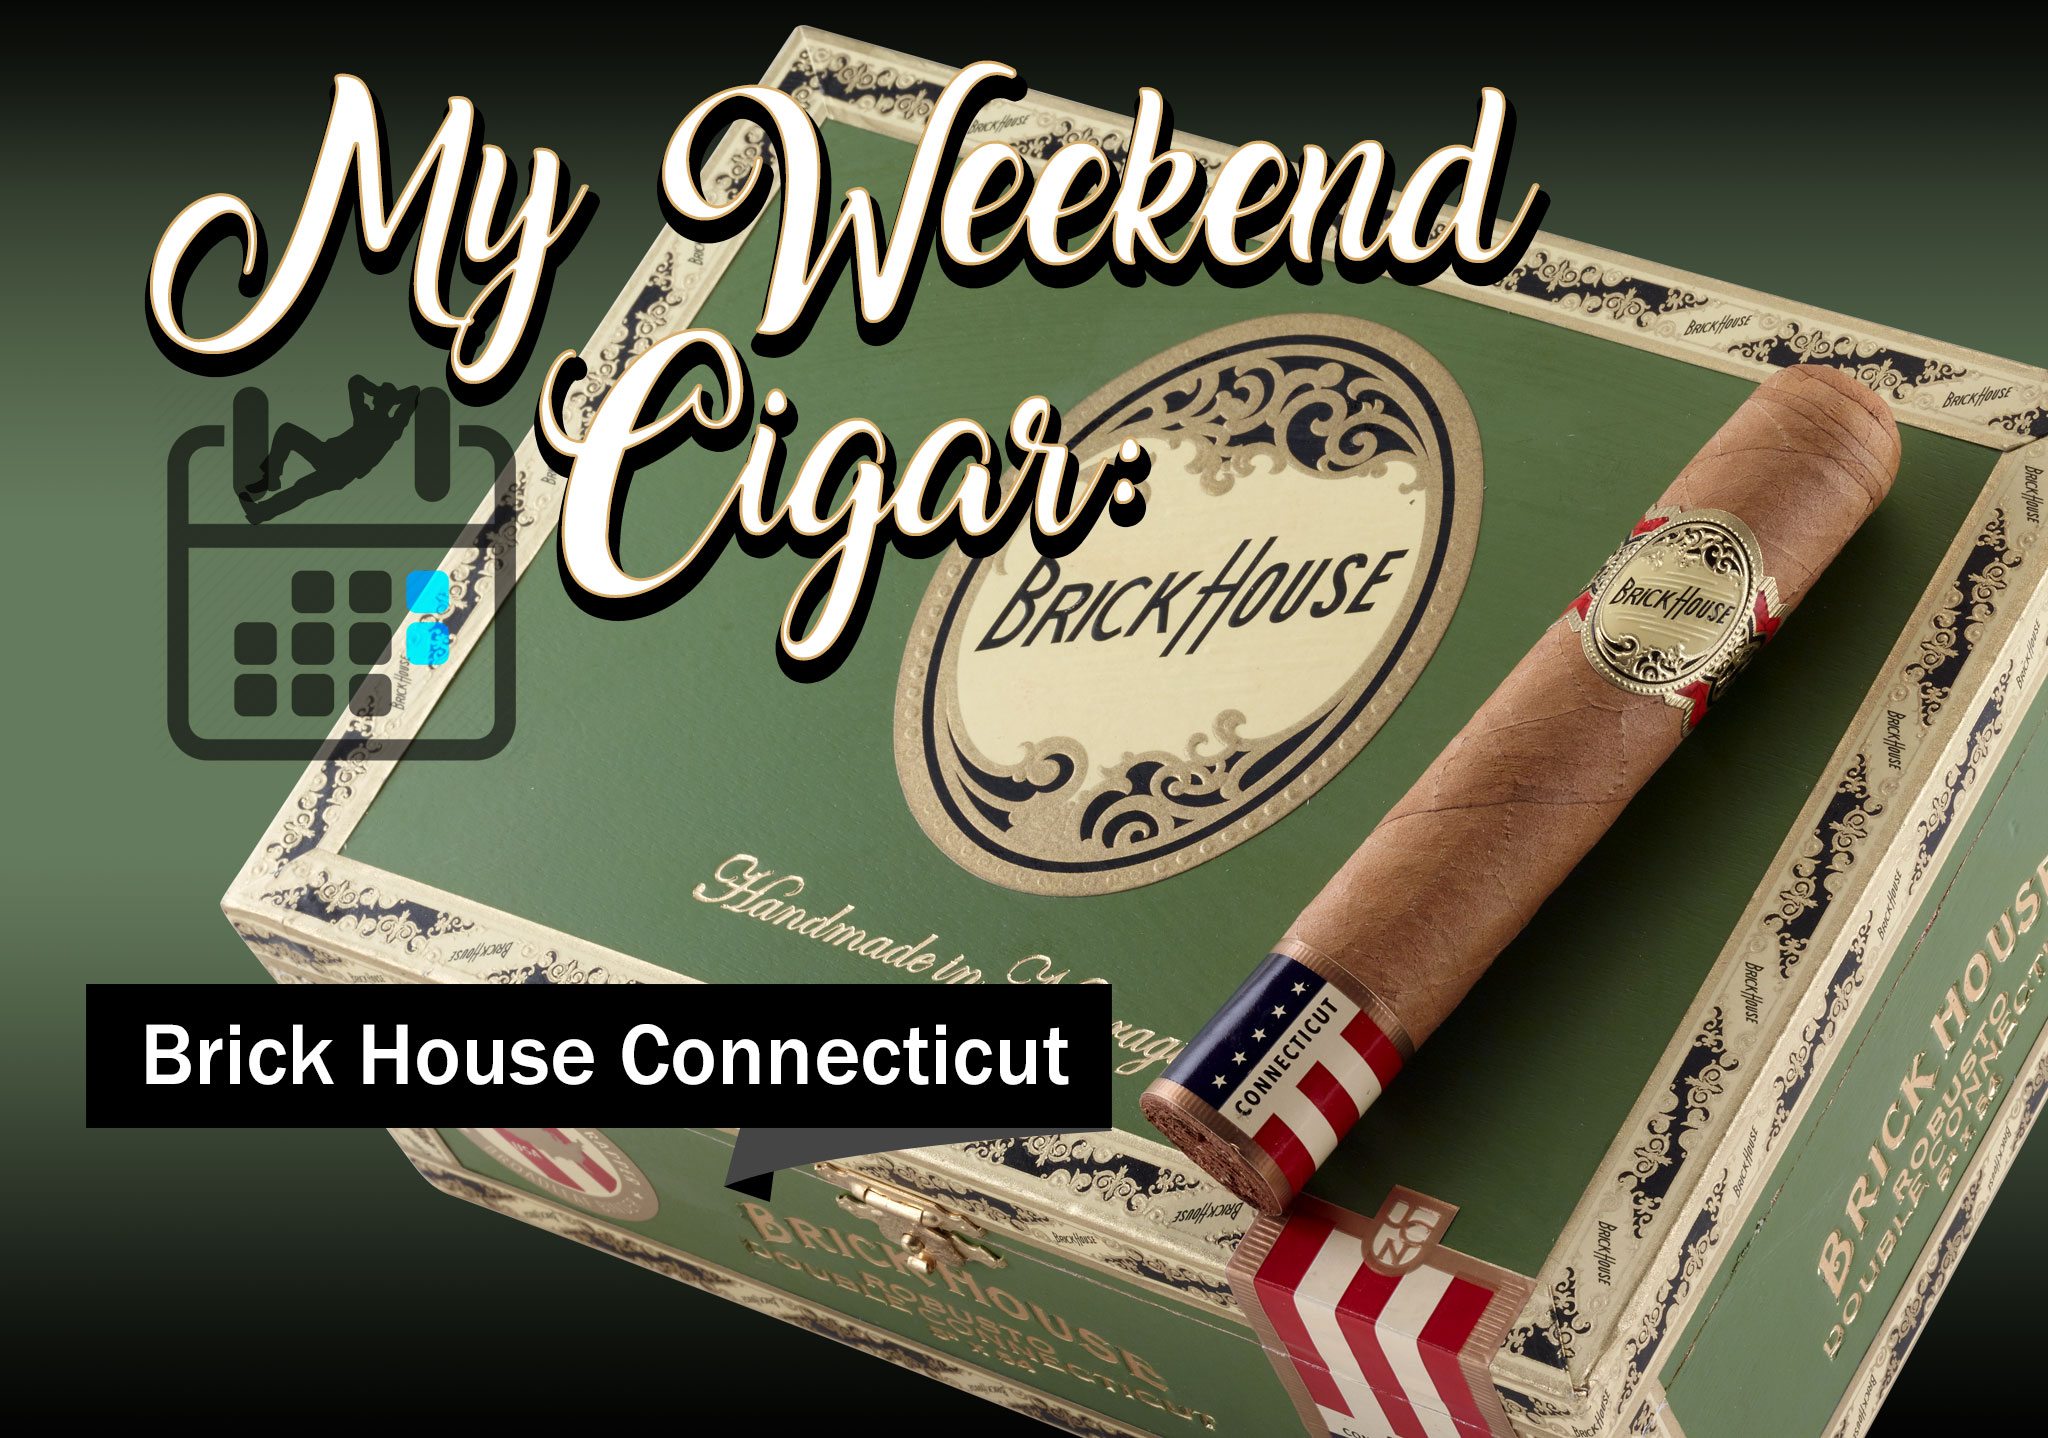 My Weekend Cigar: Jan. 8, 2018 – Brick House Connecticut